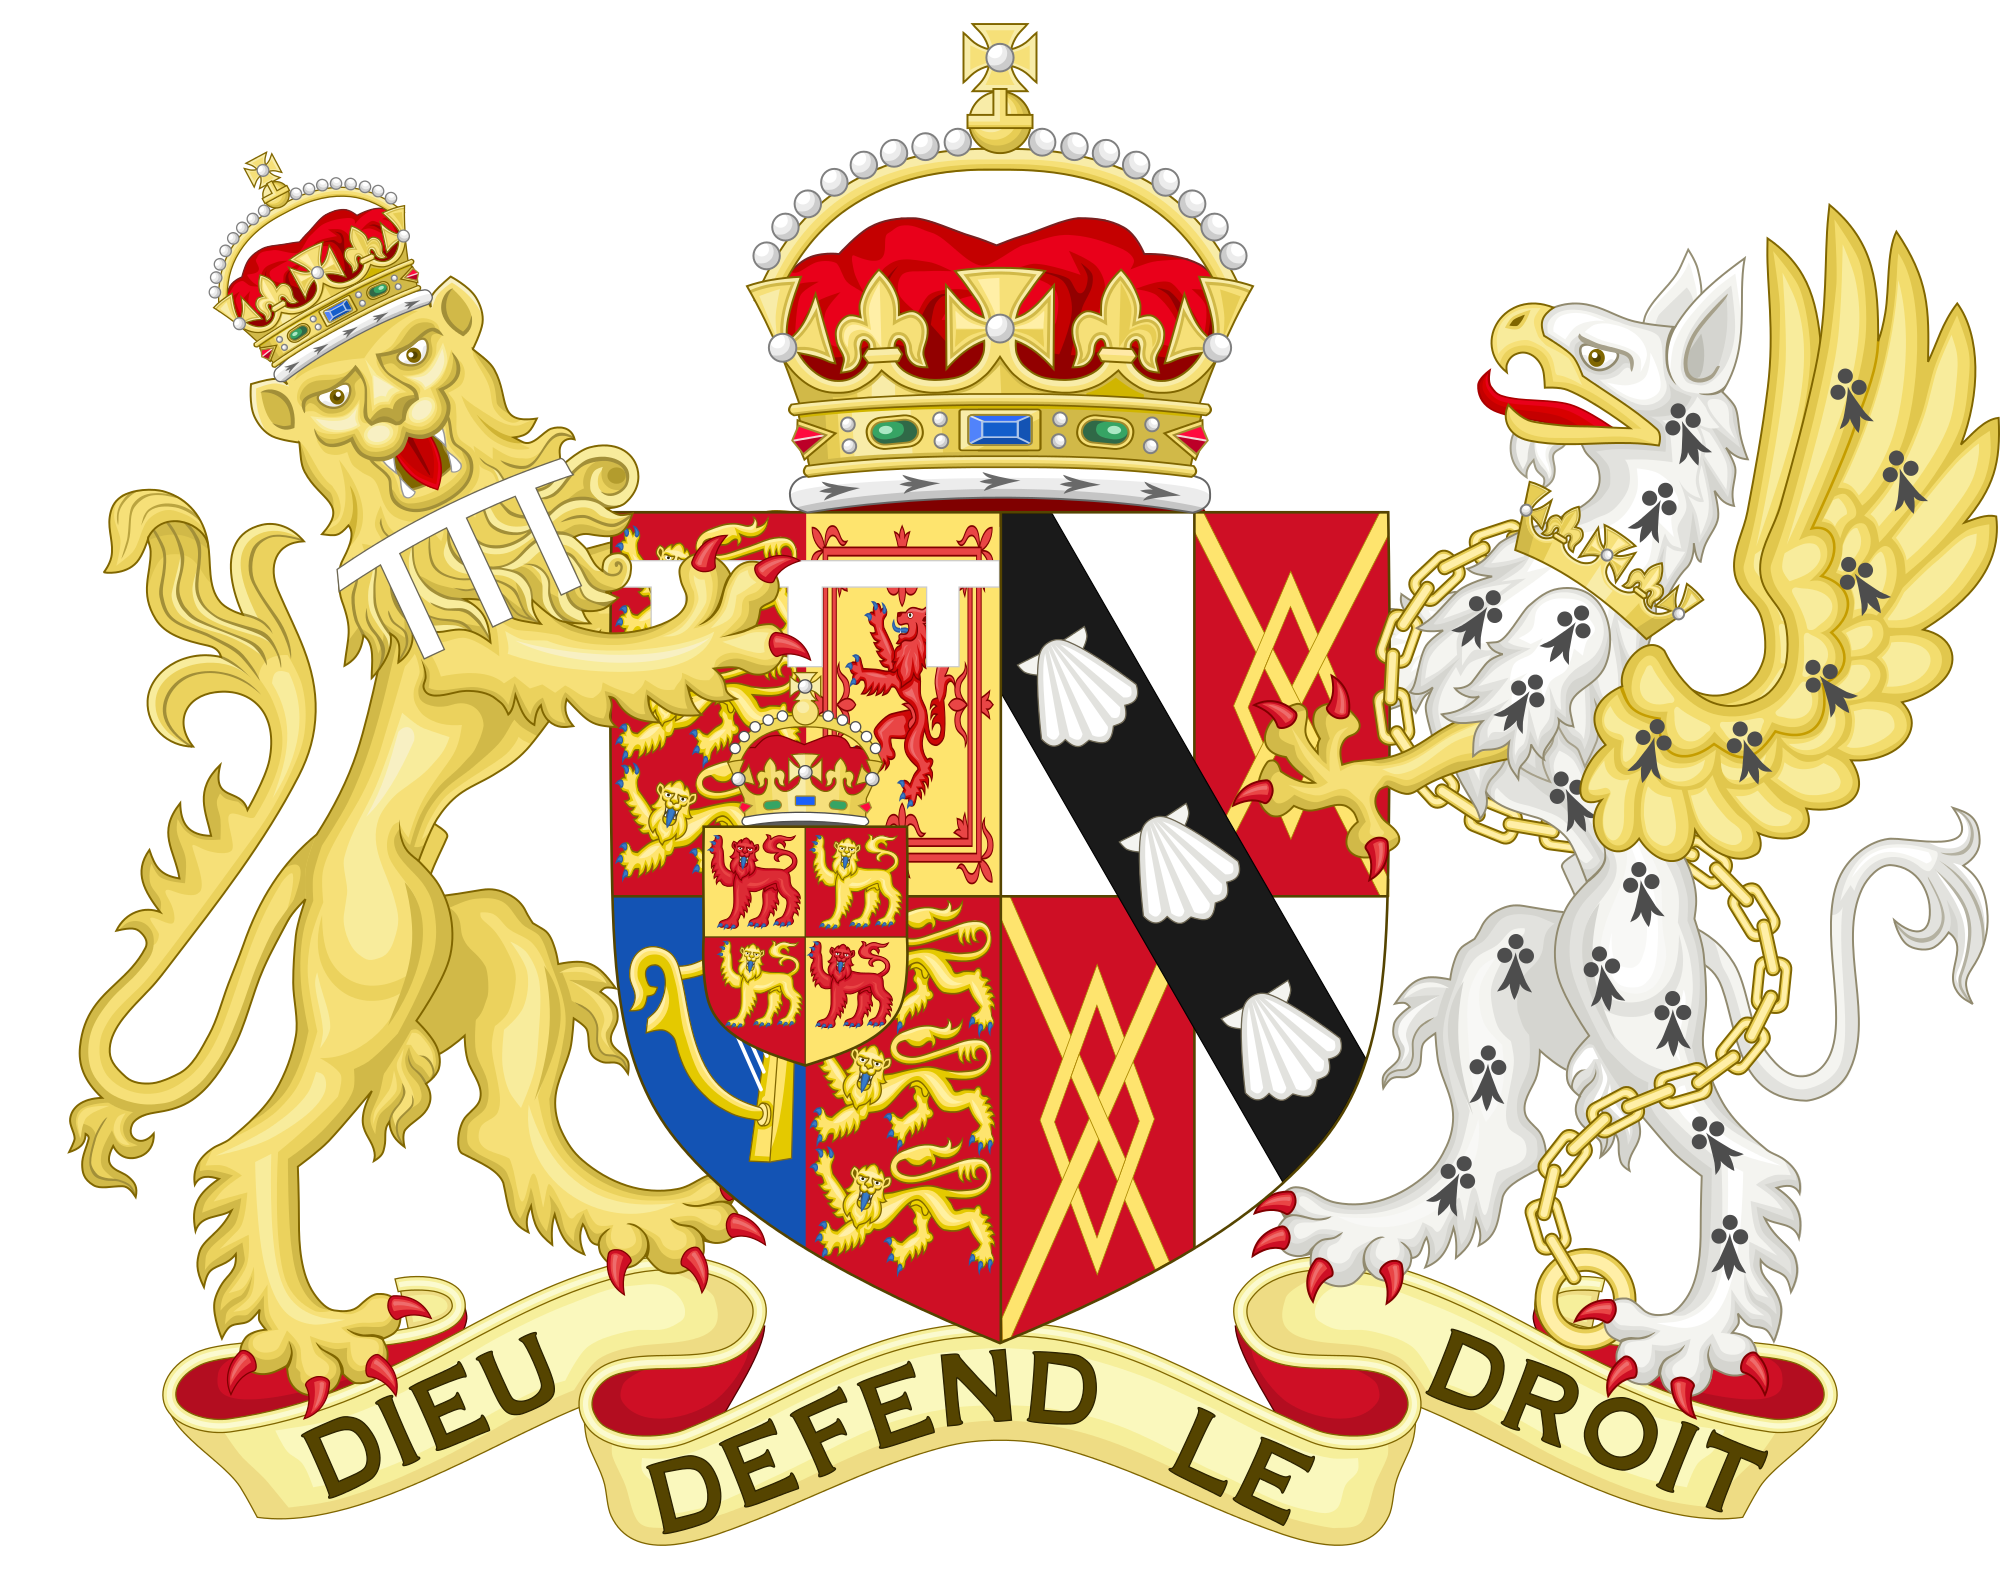 arms of diana princess of wales 1981 1996 heraldry. Black Bedroom Furniture Sets. Home Design Ideas